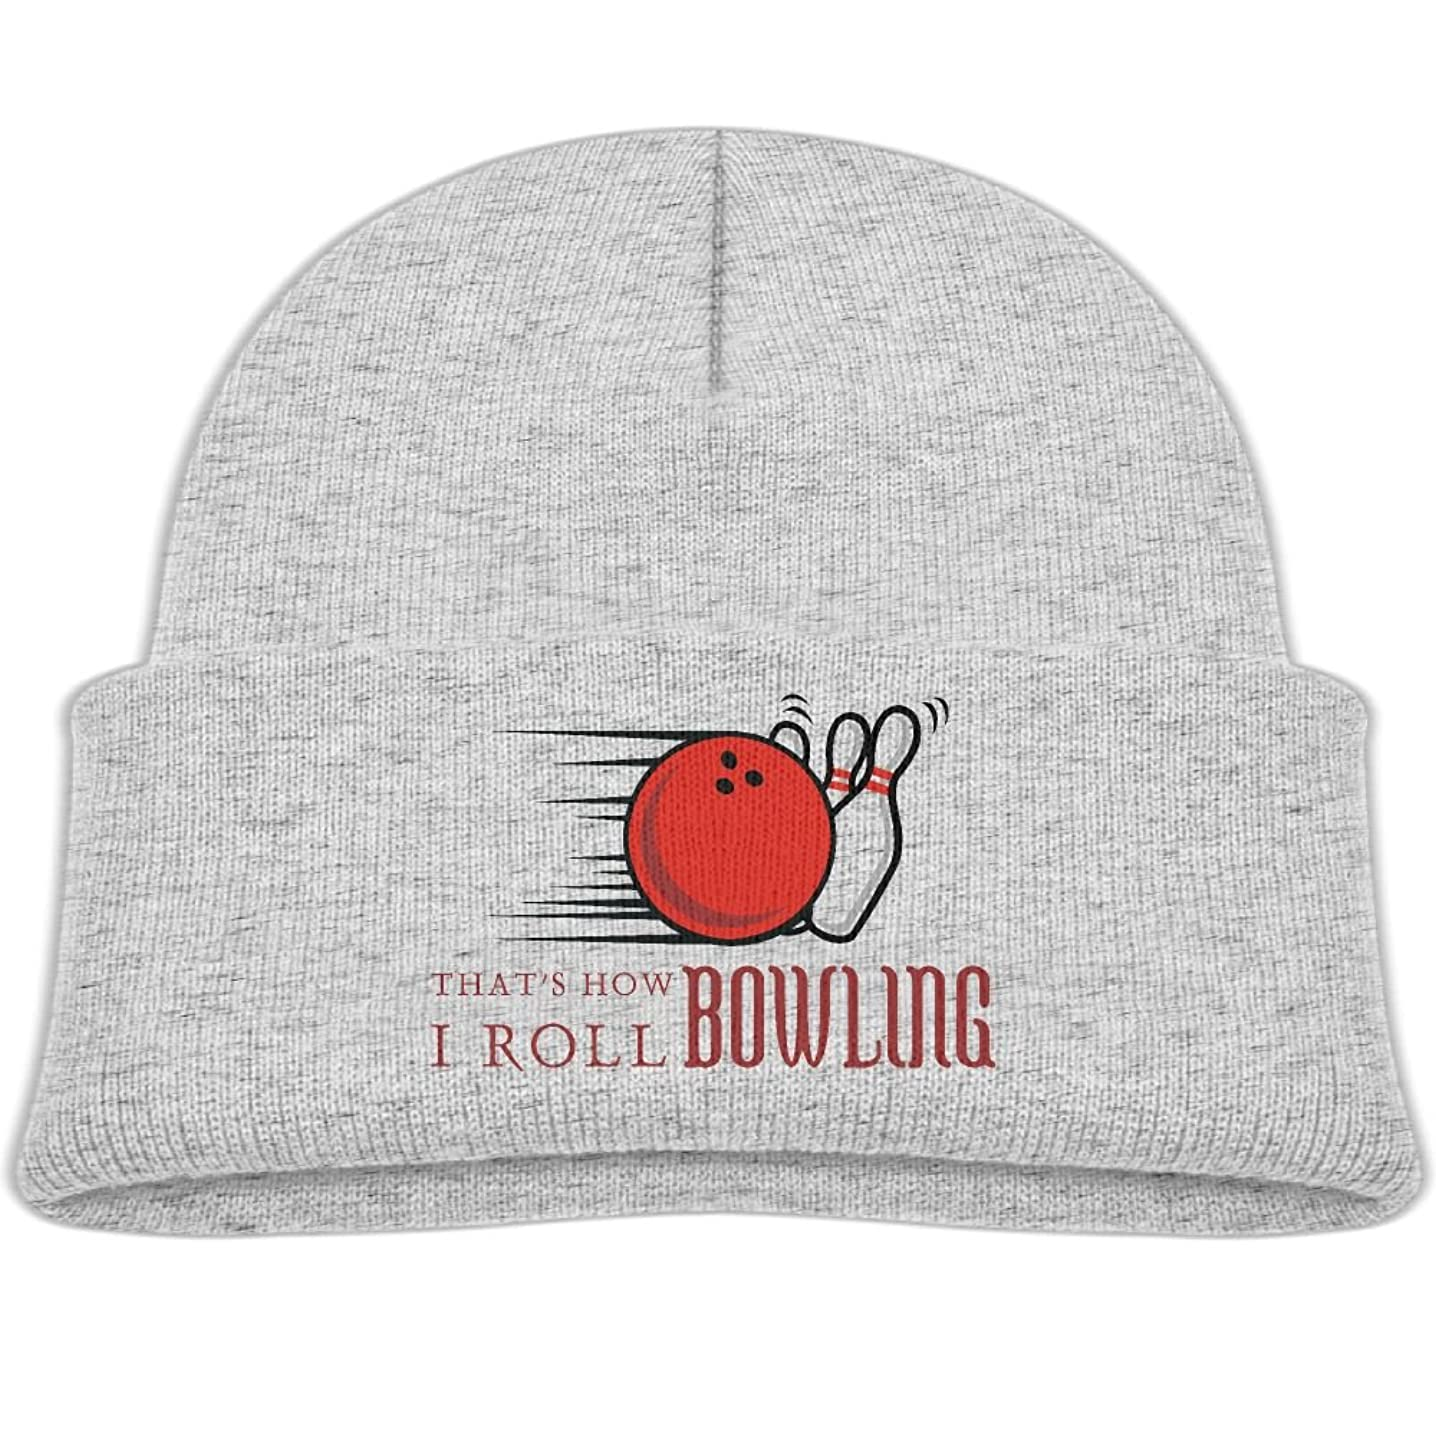 Qiop nee Baby Beanie Hats Soft Knit Cap That's How I Roll Bowling Boys Girls